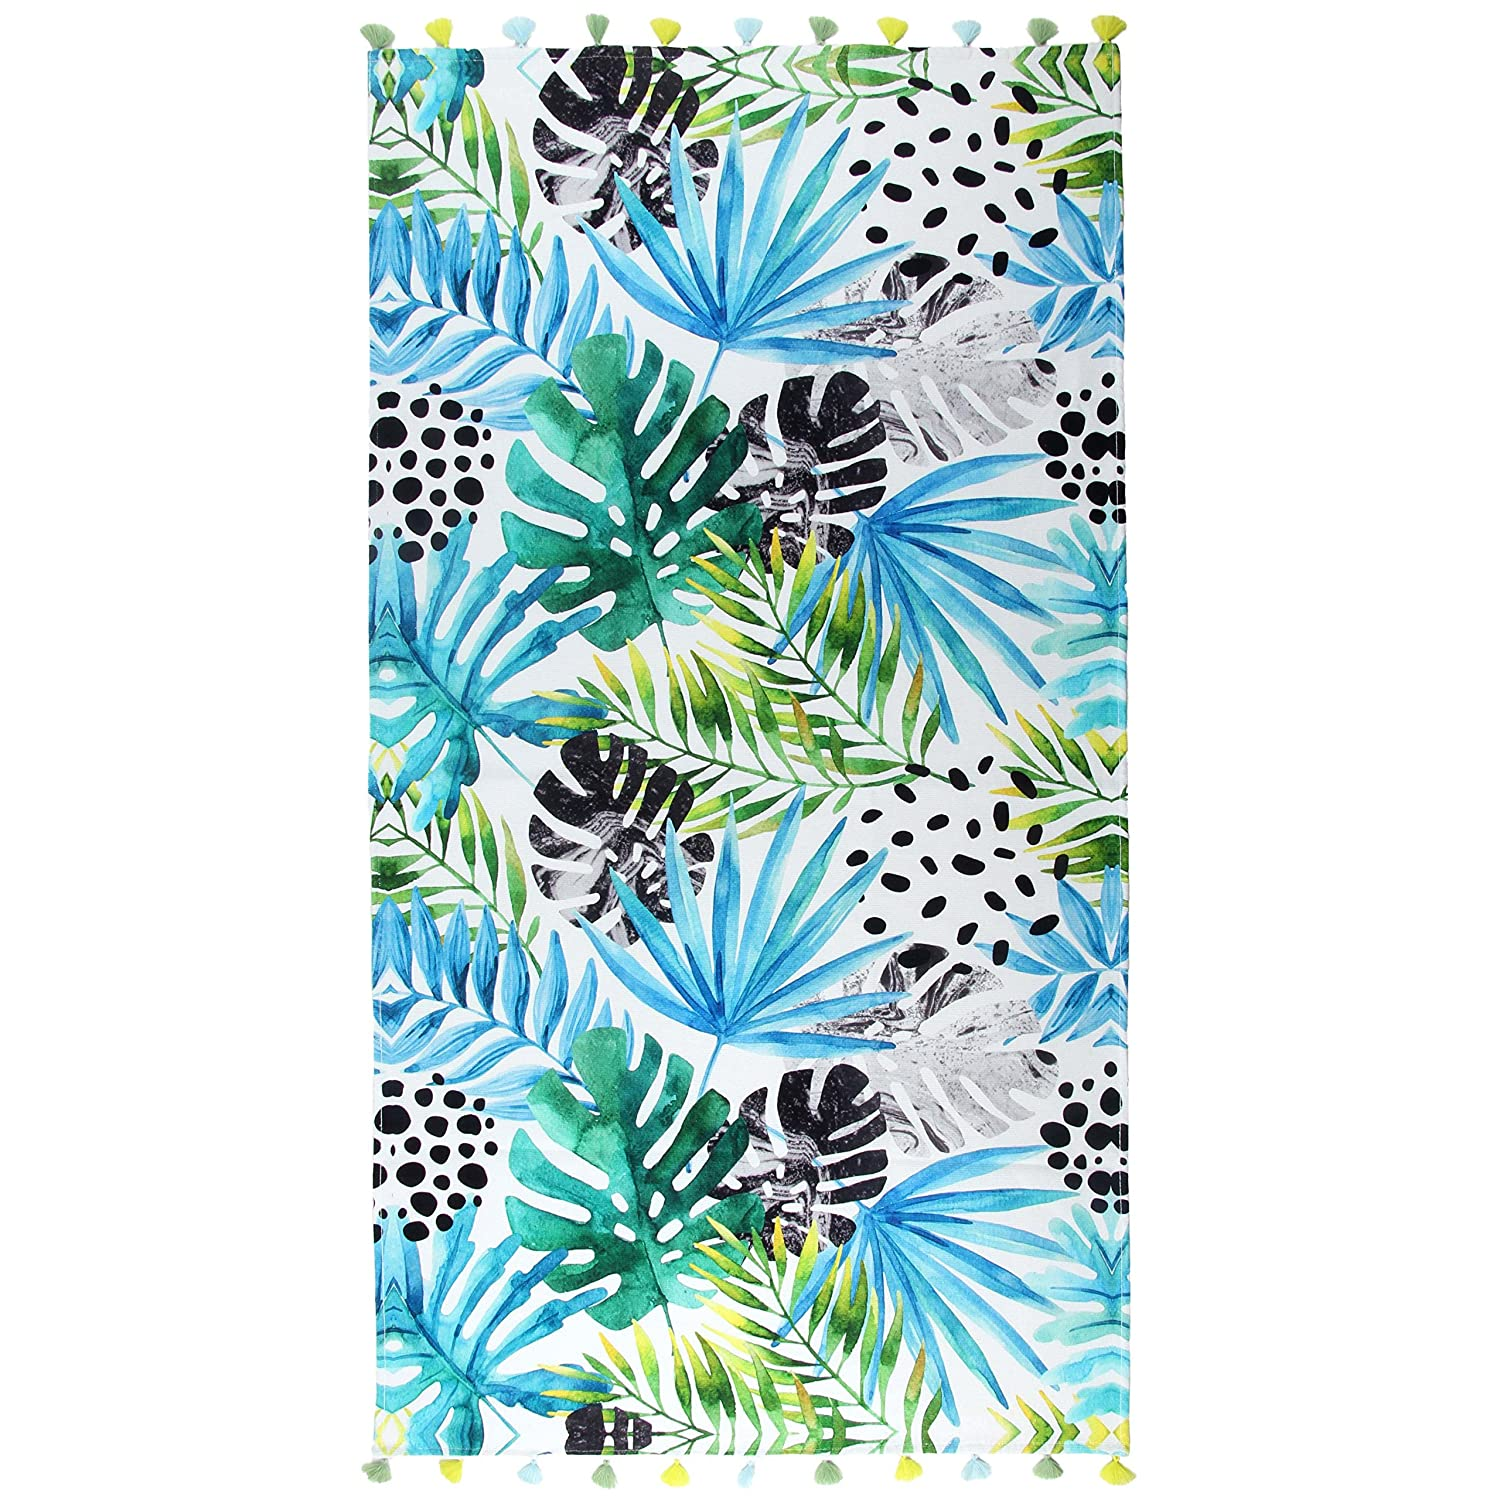 Palm Beach Towel 35 x 59 - Premium Cotton Beach Towel - Thin Beach Towel - 100% Premium Turkish Cotton